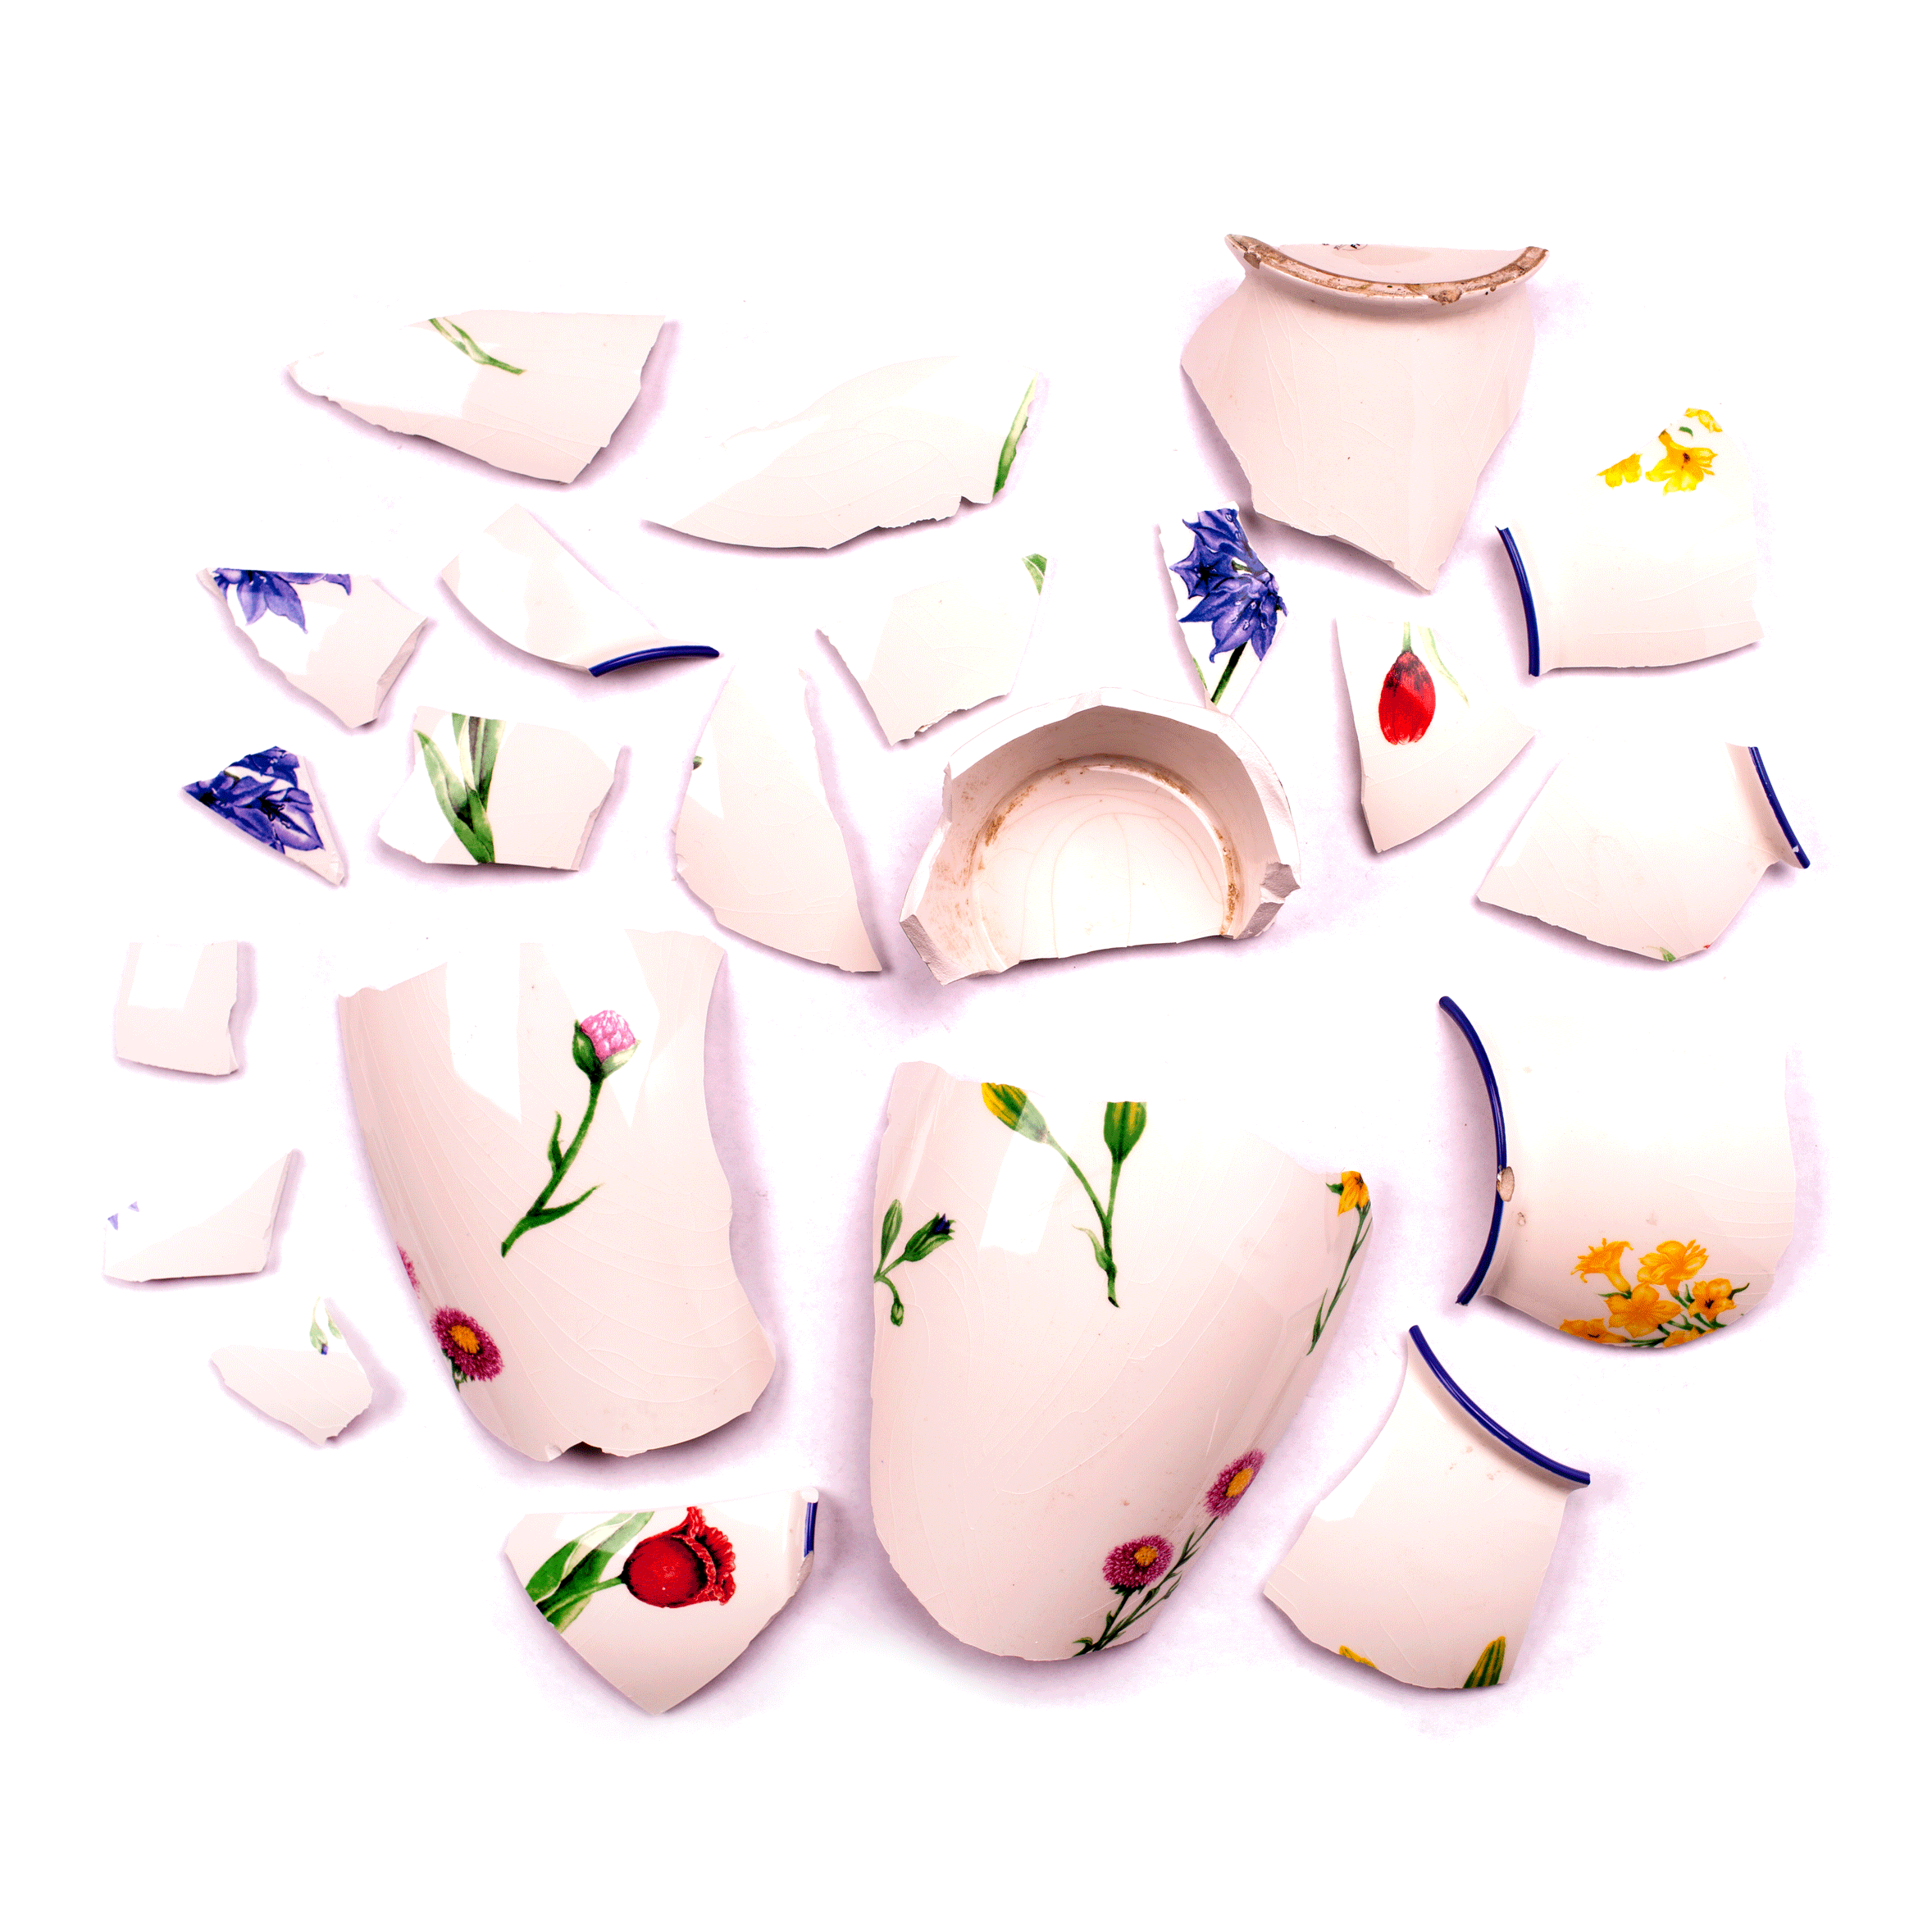 Vase clipart smashed The Store  Bad Man